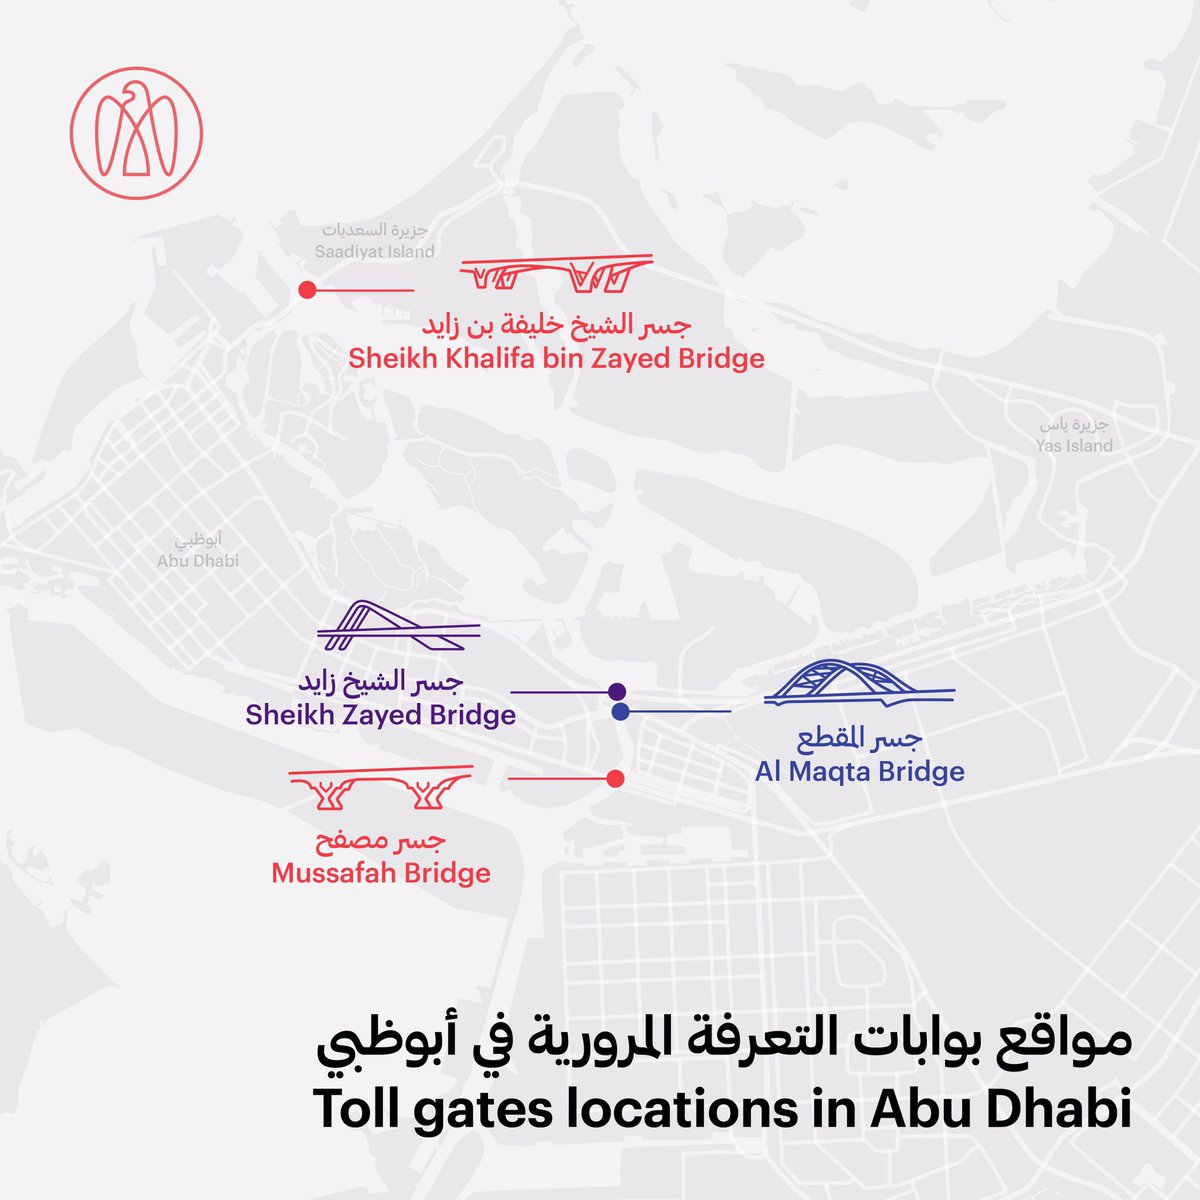 Abu Dhabi Government Media Office on Twitter: